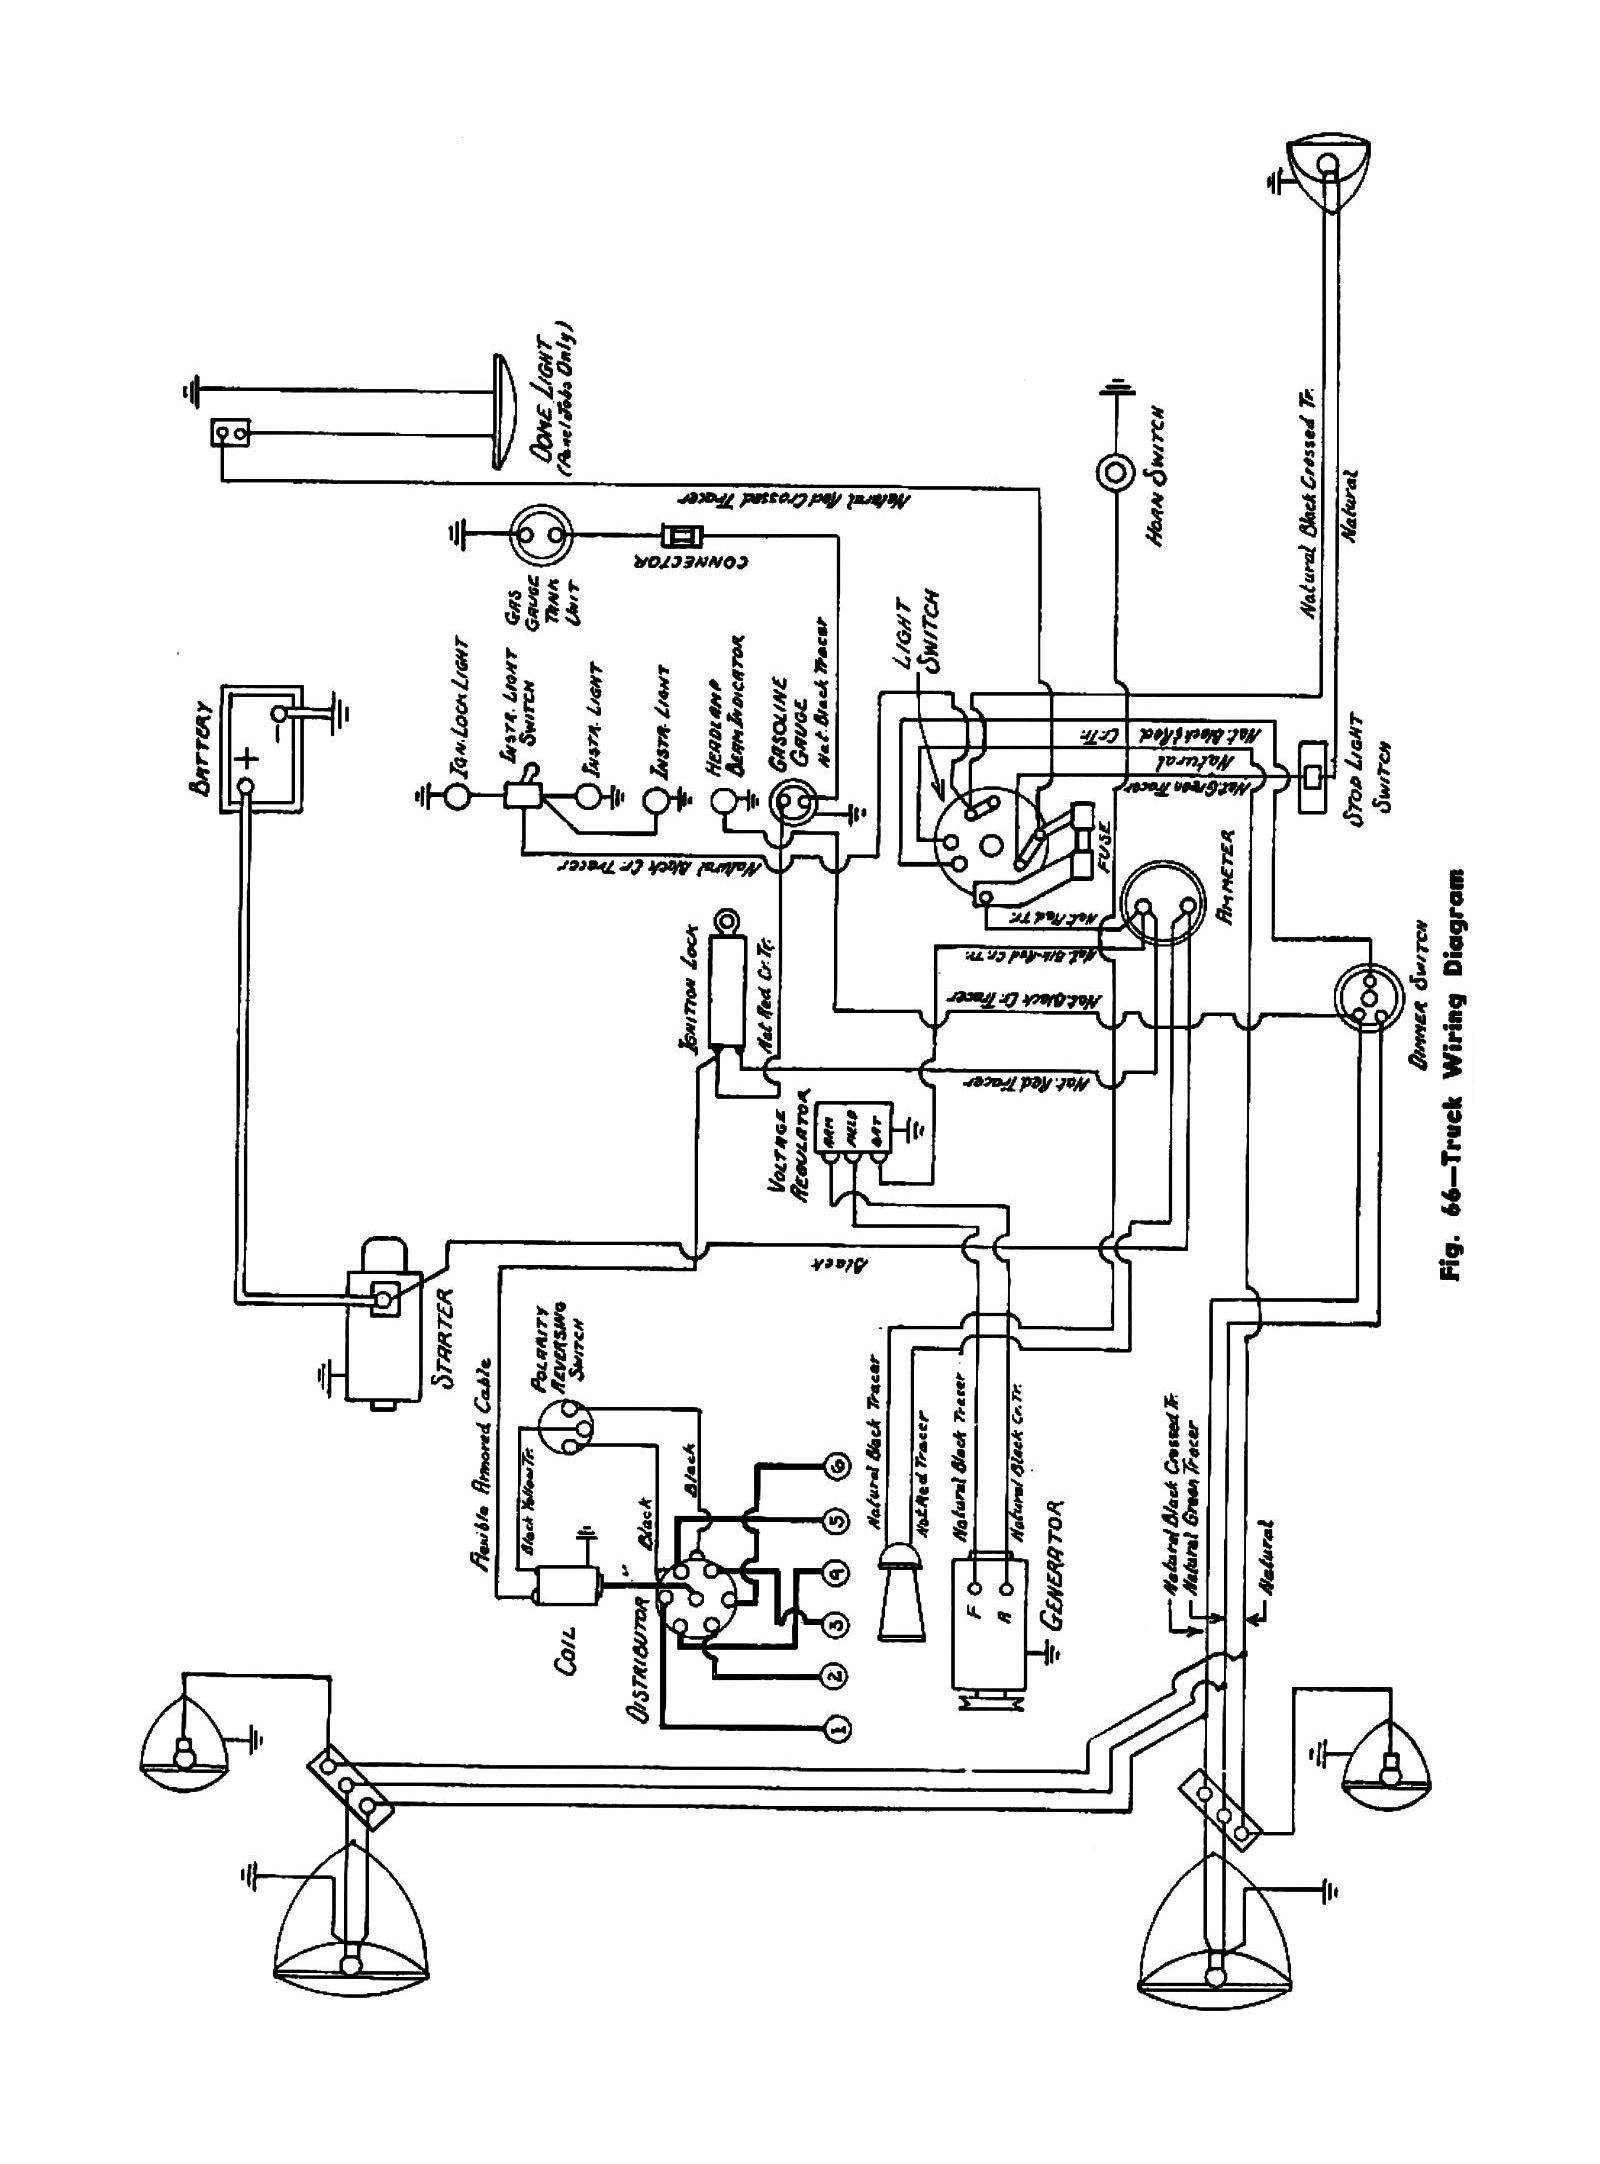 45truck ihc truck wiring diagrams mazda truck wiring diagrams \u2022 free Chevy Truck Fuse Box Diagram at gsmx.co